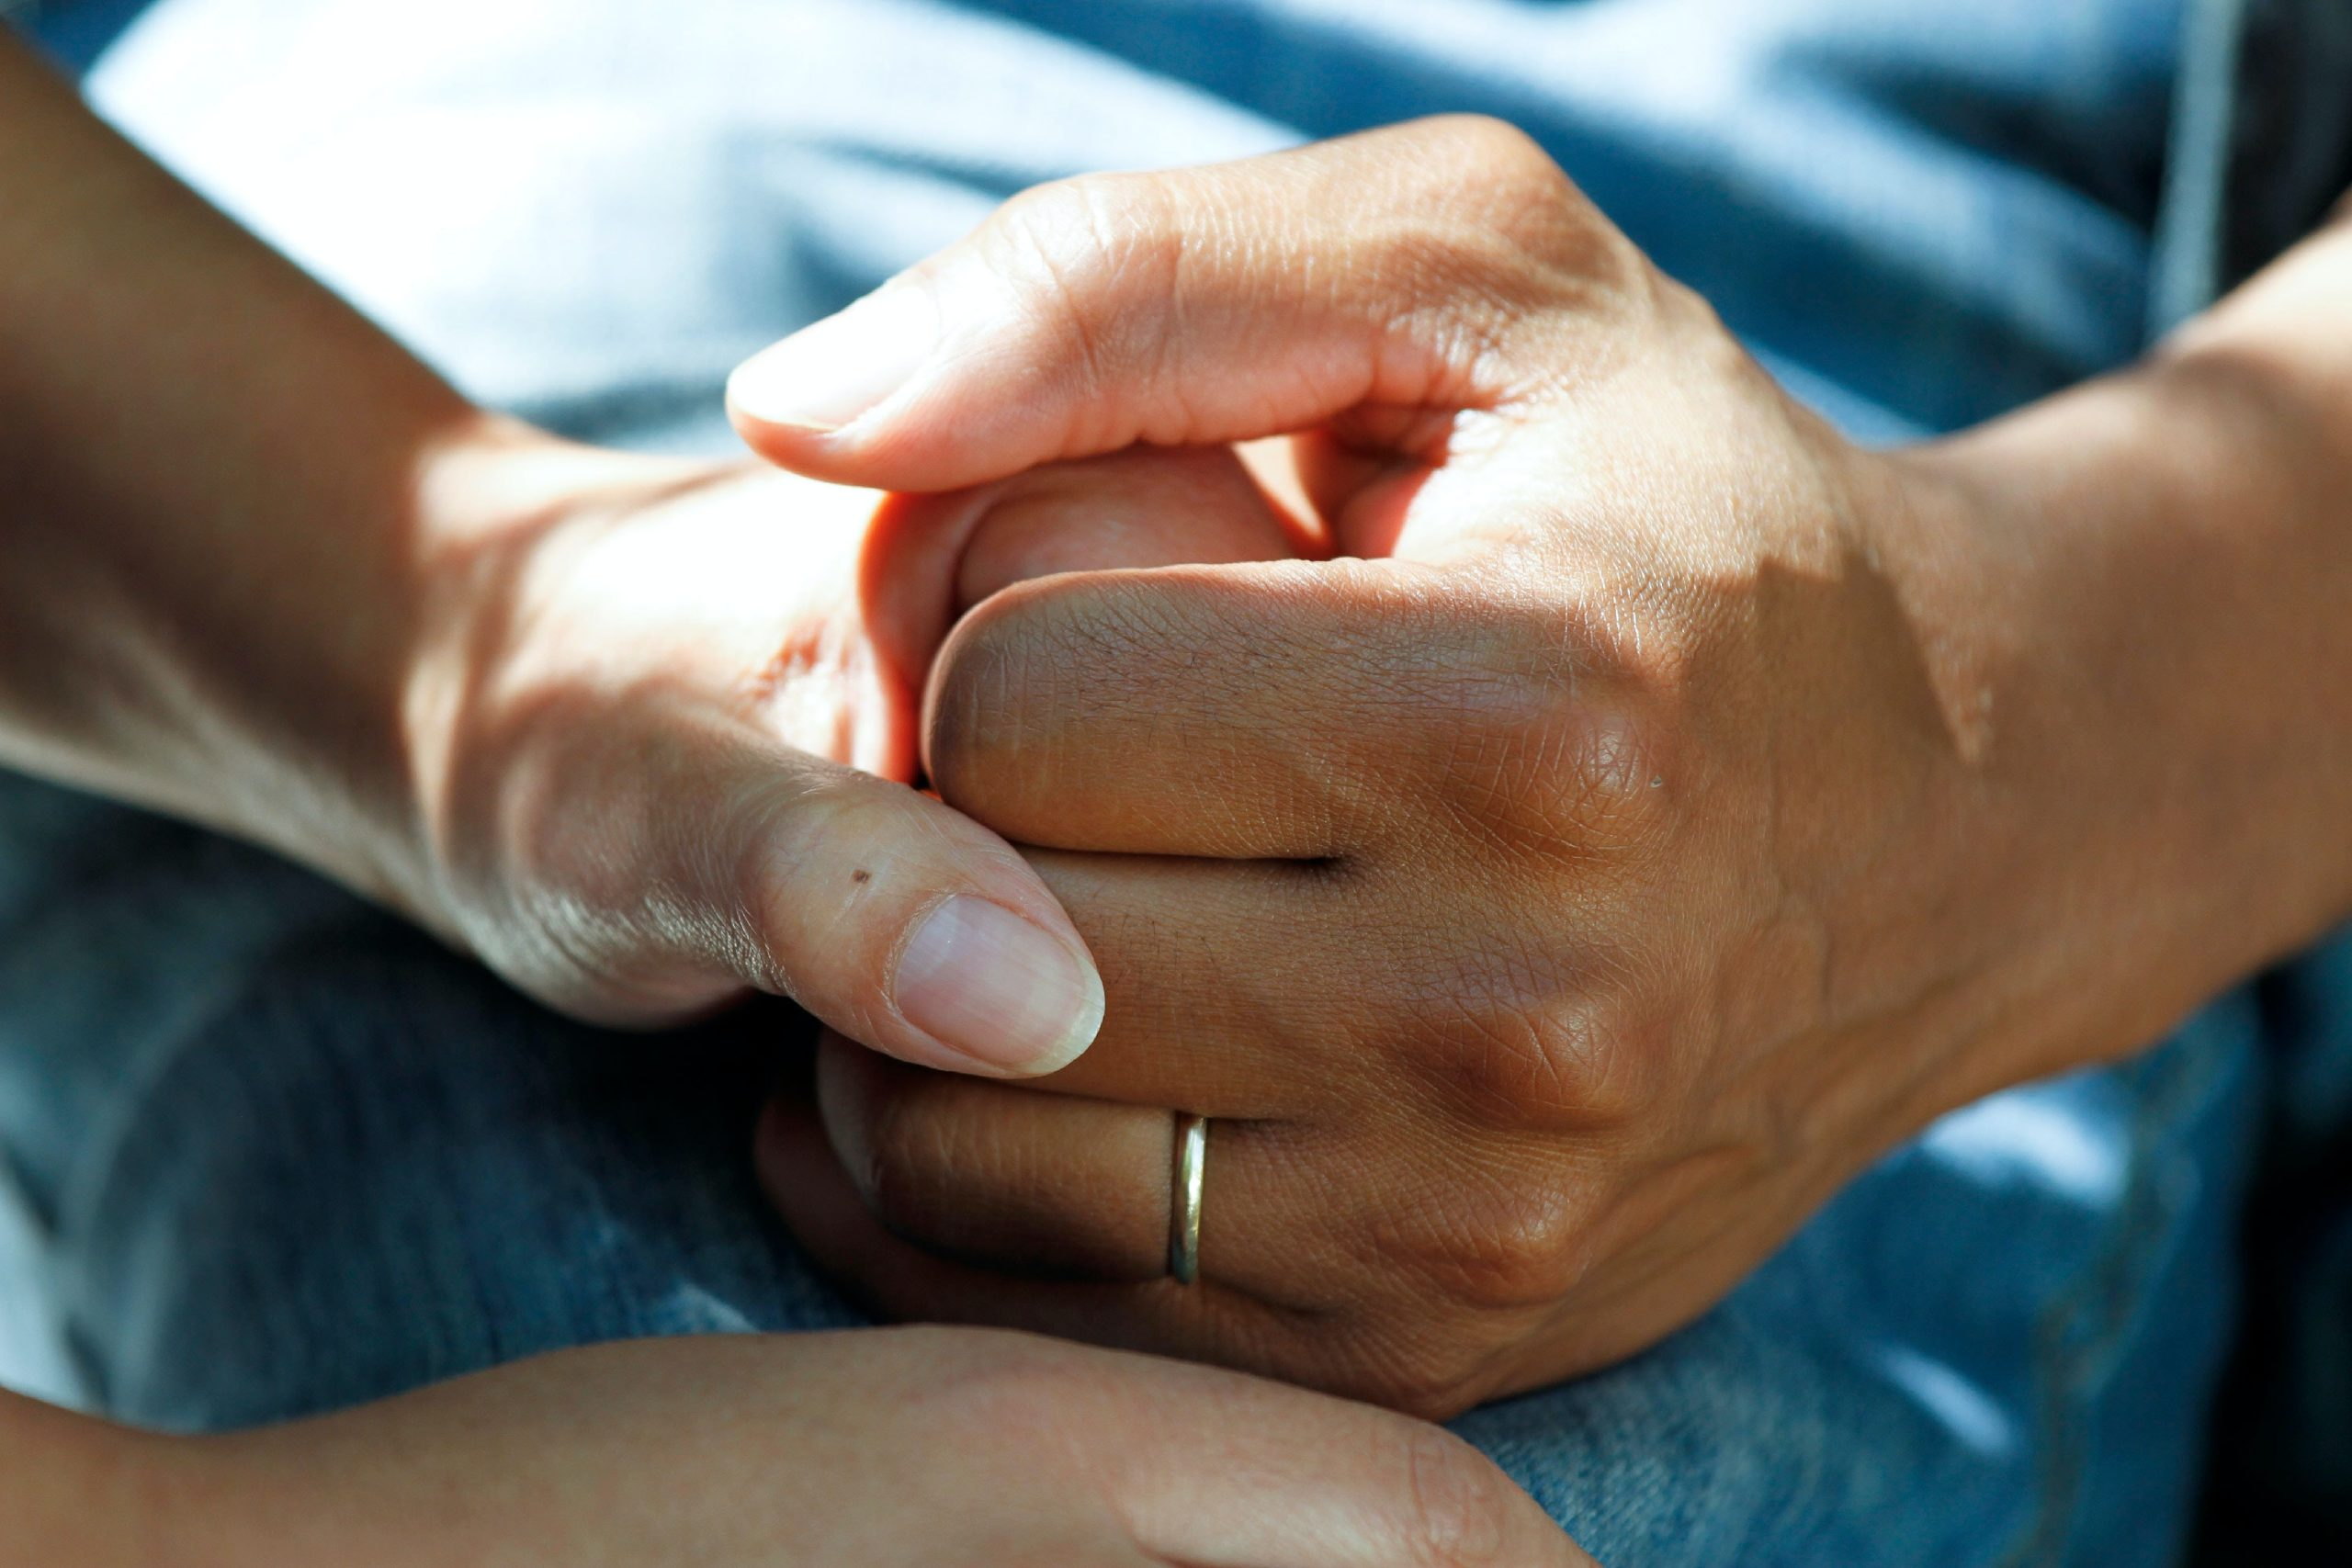 How Can I Be a Good Caregiver?